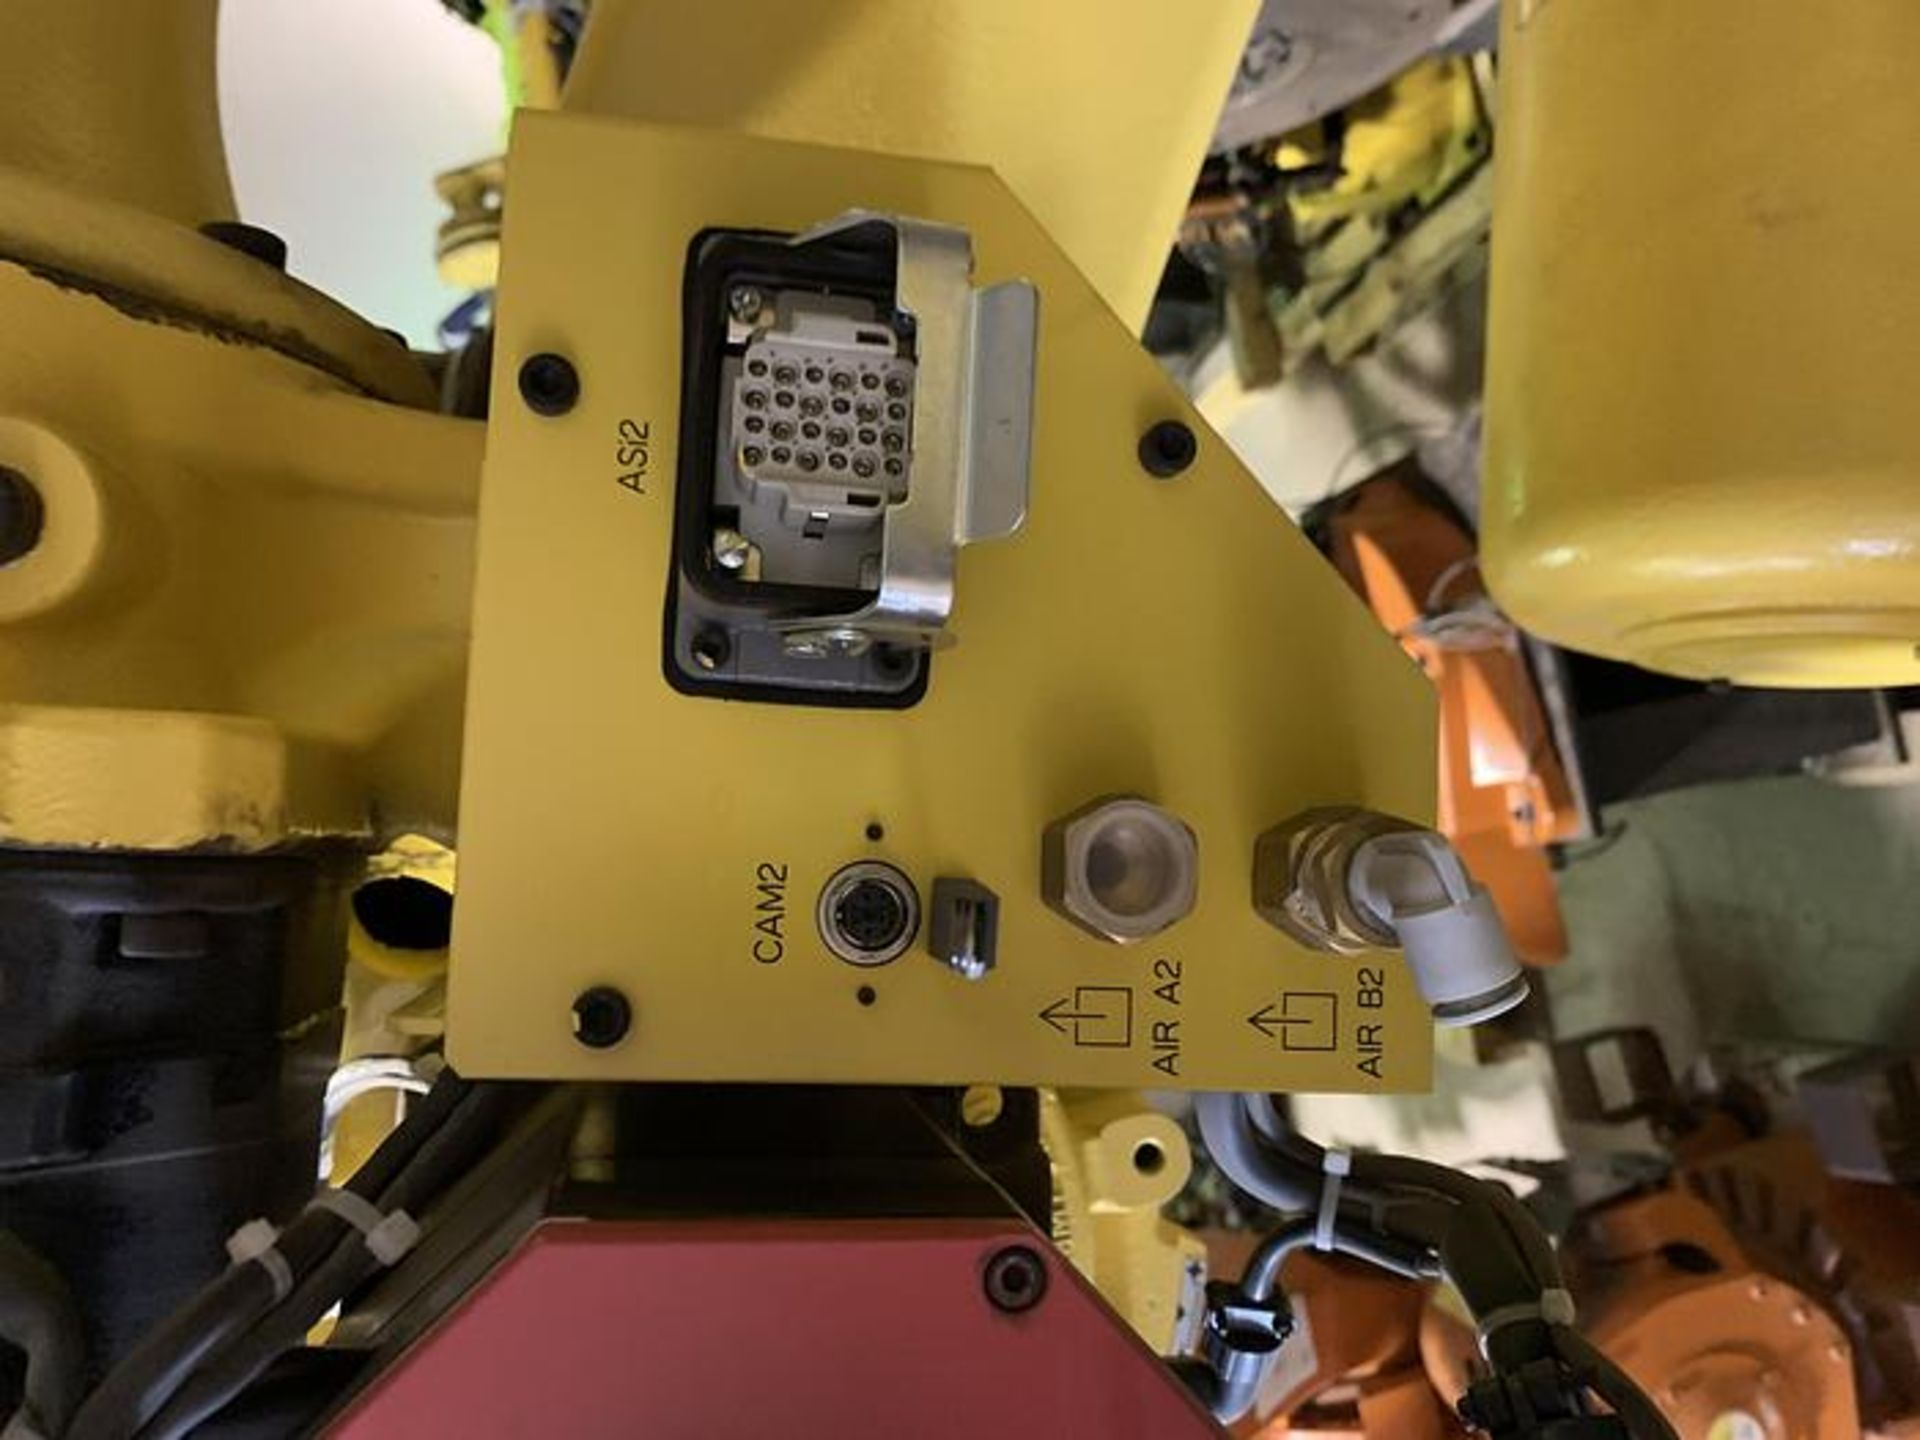 FANUC R2000iC/125L 6 AXIS CNC ROBOT WITH R30iB CONTROLLER, IR VISION, CABLES & REACH - Image 10 of 17